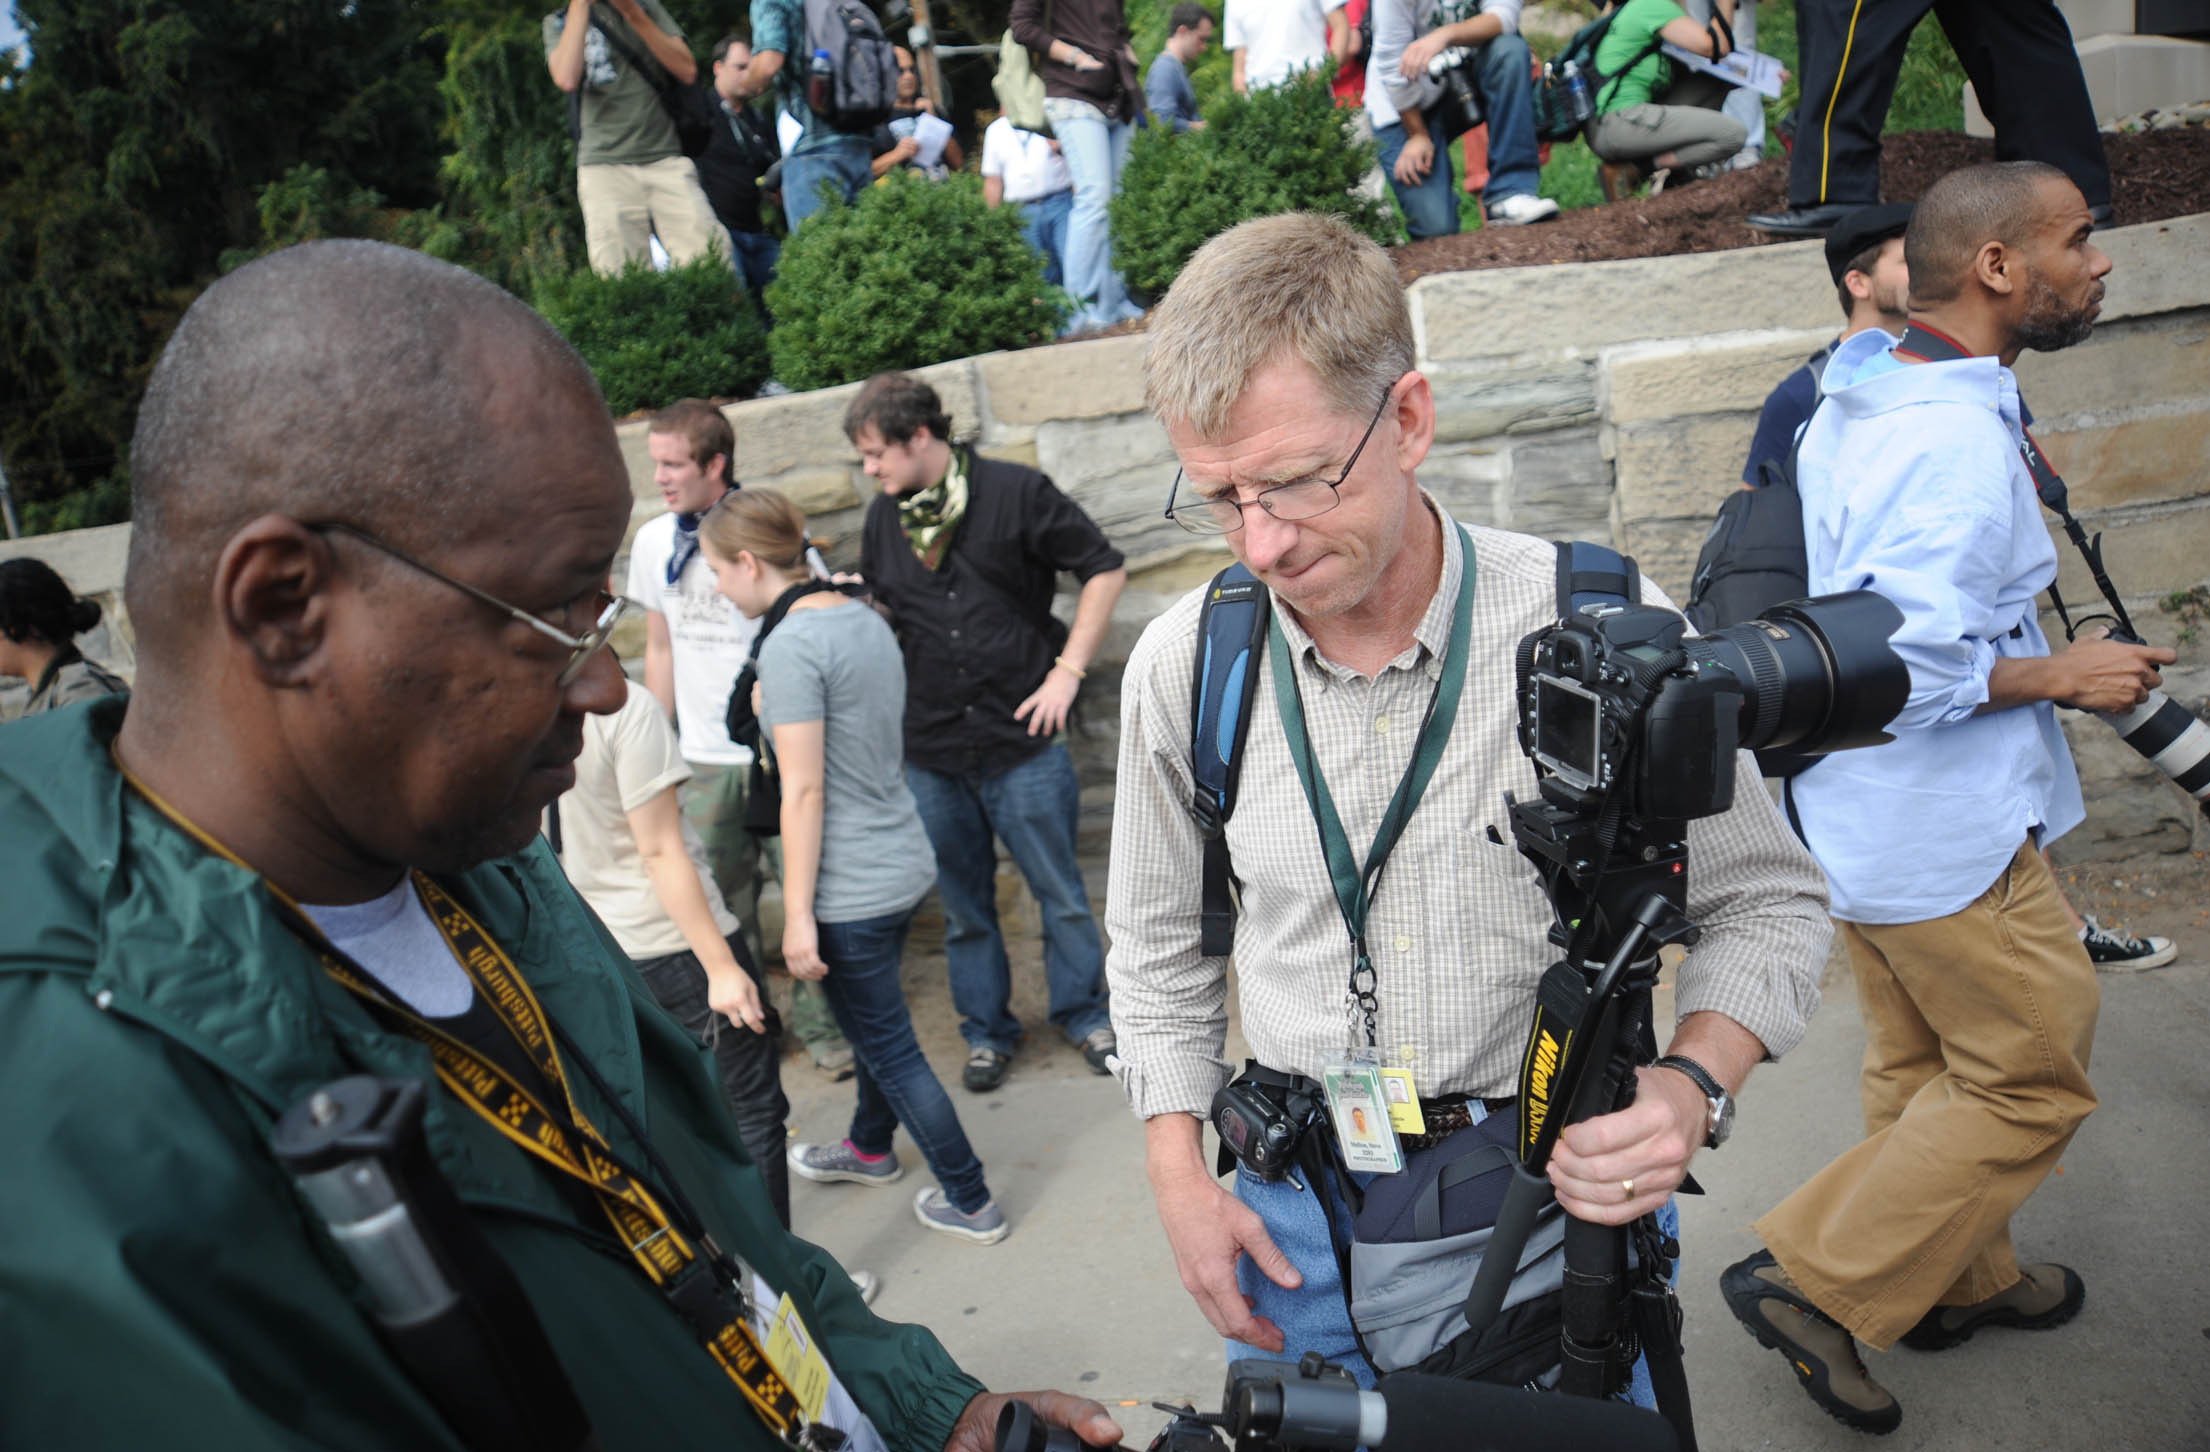 My colleague Nate Guidry (left) and I cover the G-20 Summit in Pittsburgh.